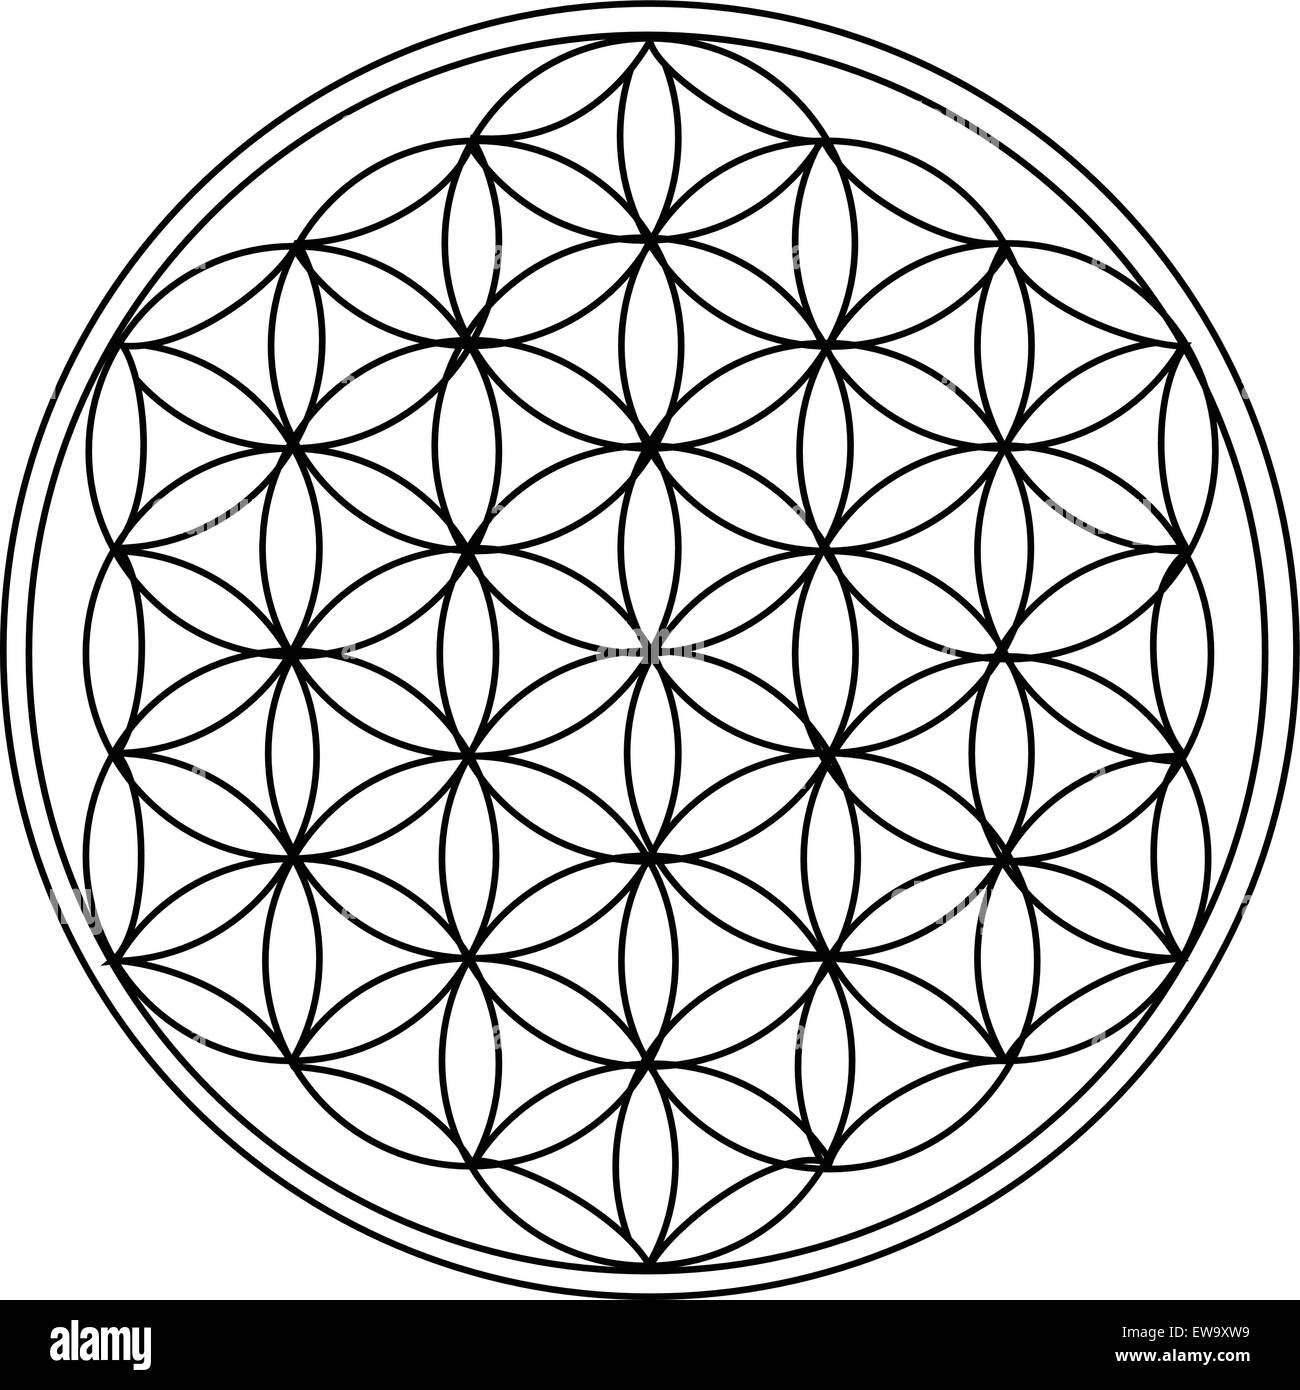 The Flower of Life - Stock Image